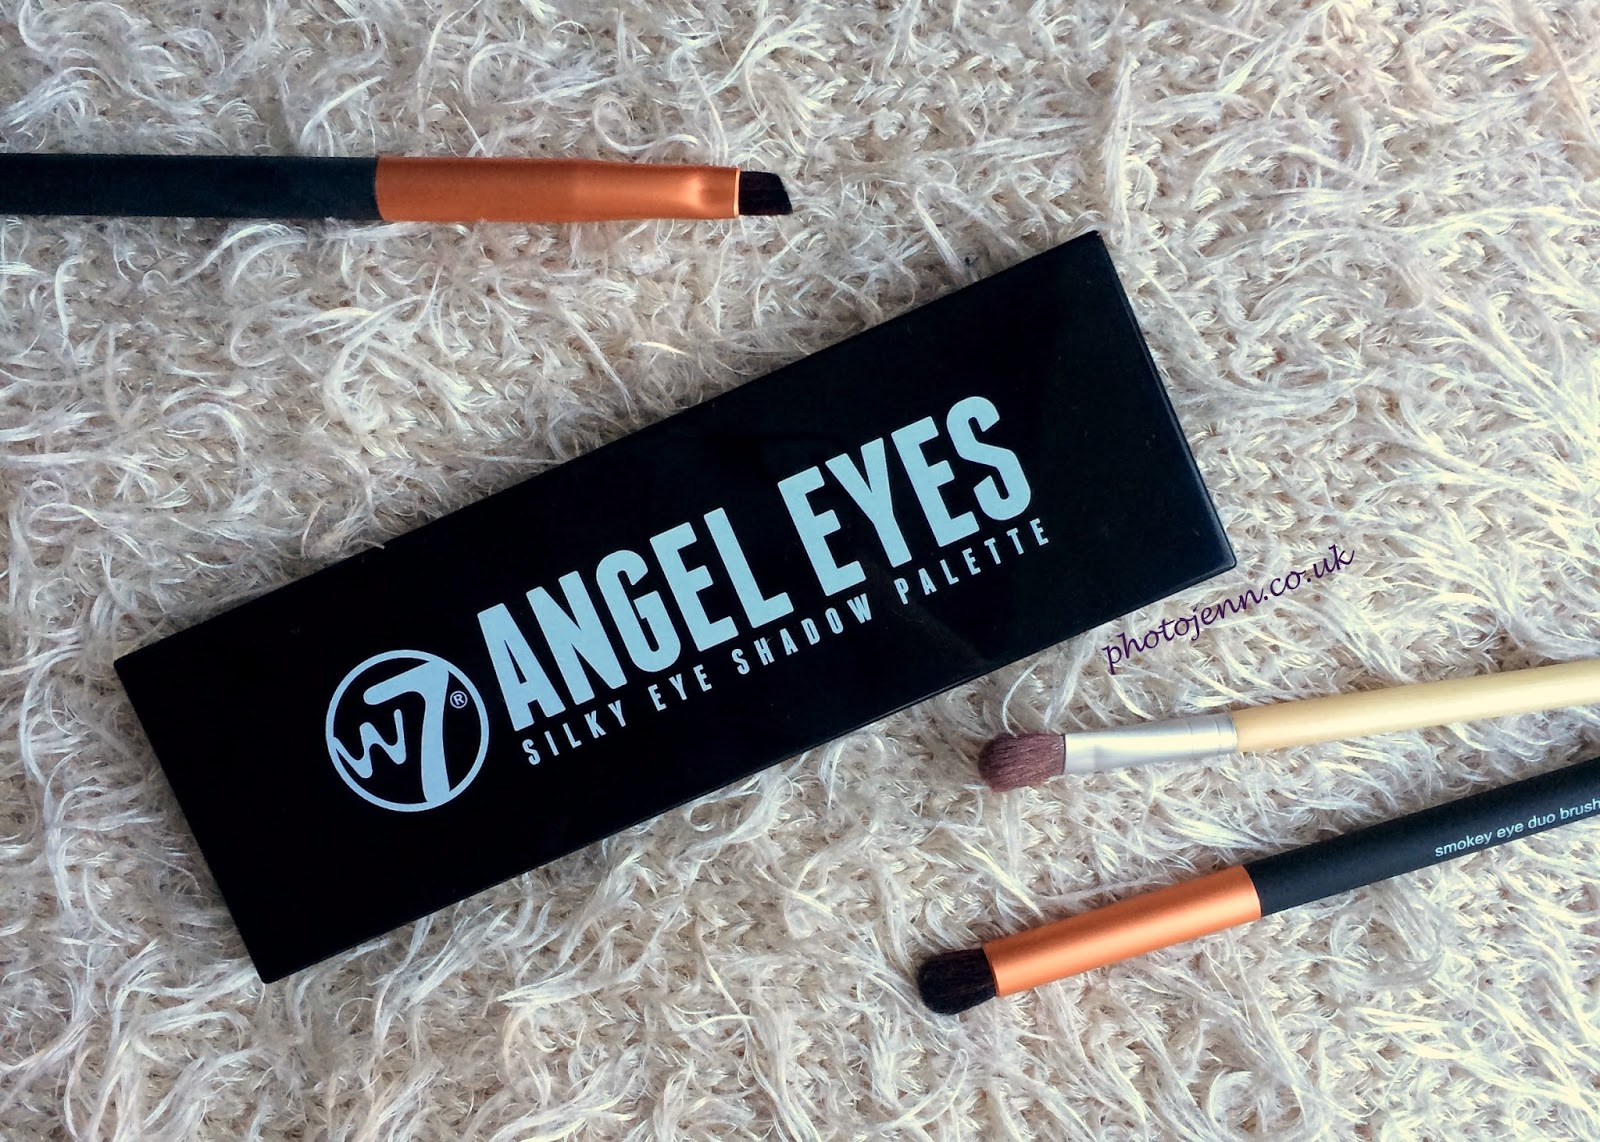 Angel Eyes Nude Pics photo -jenn- ic: w7 angel eyes silky eye shadow palette